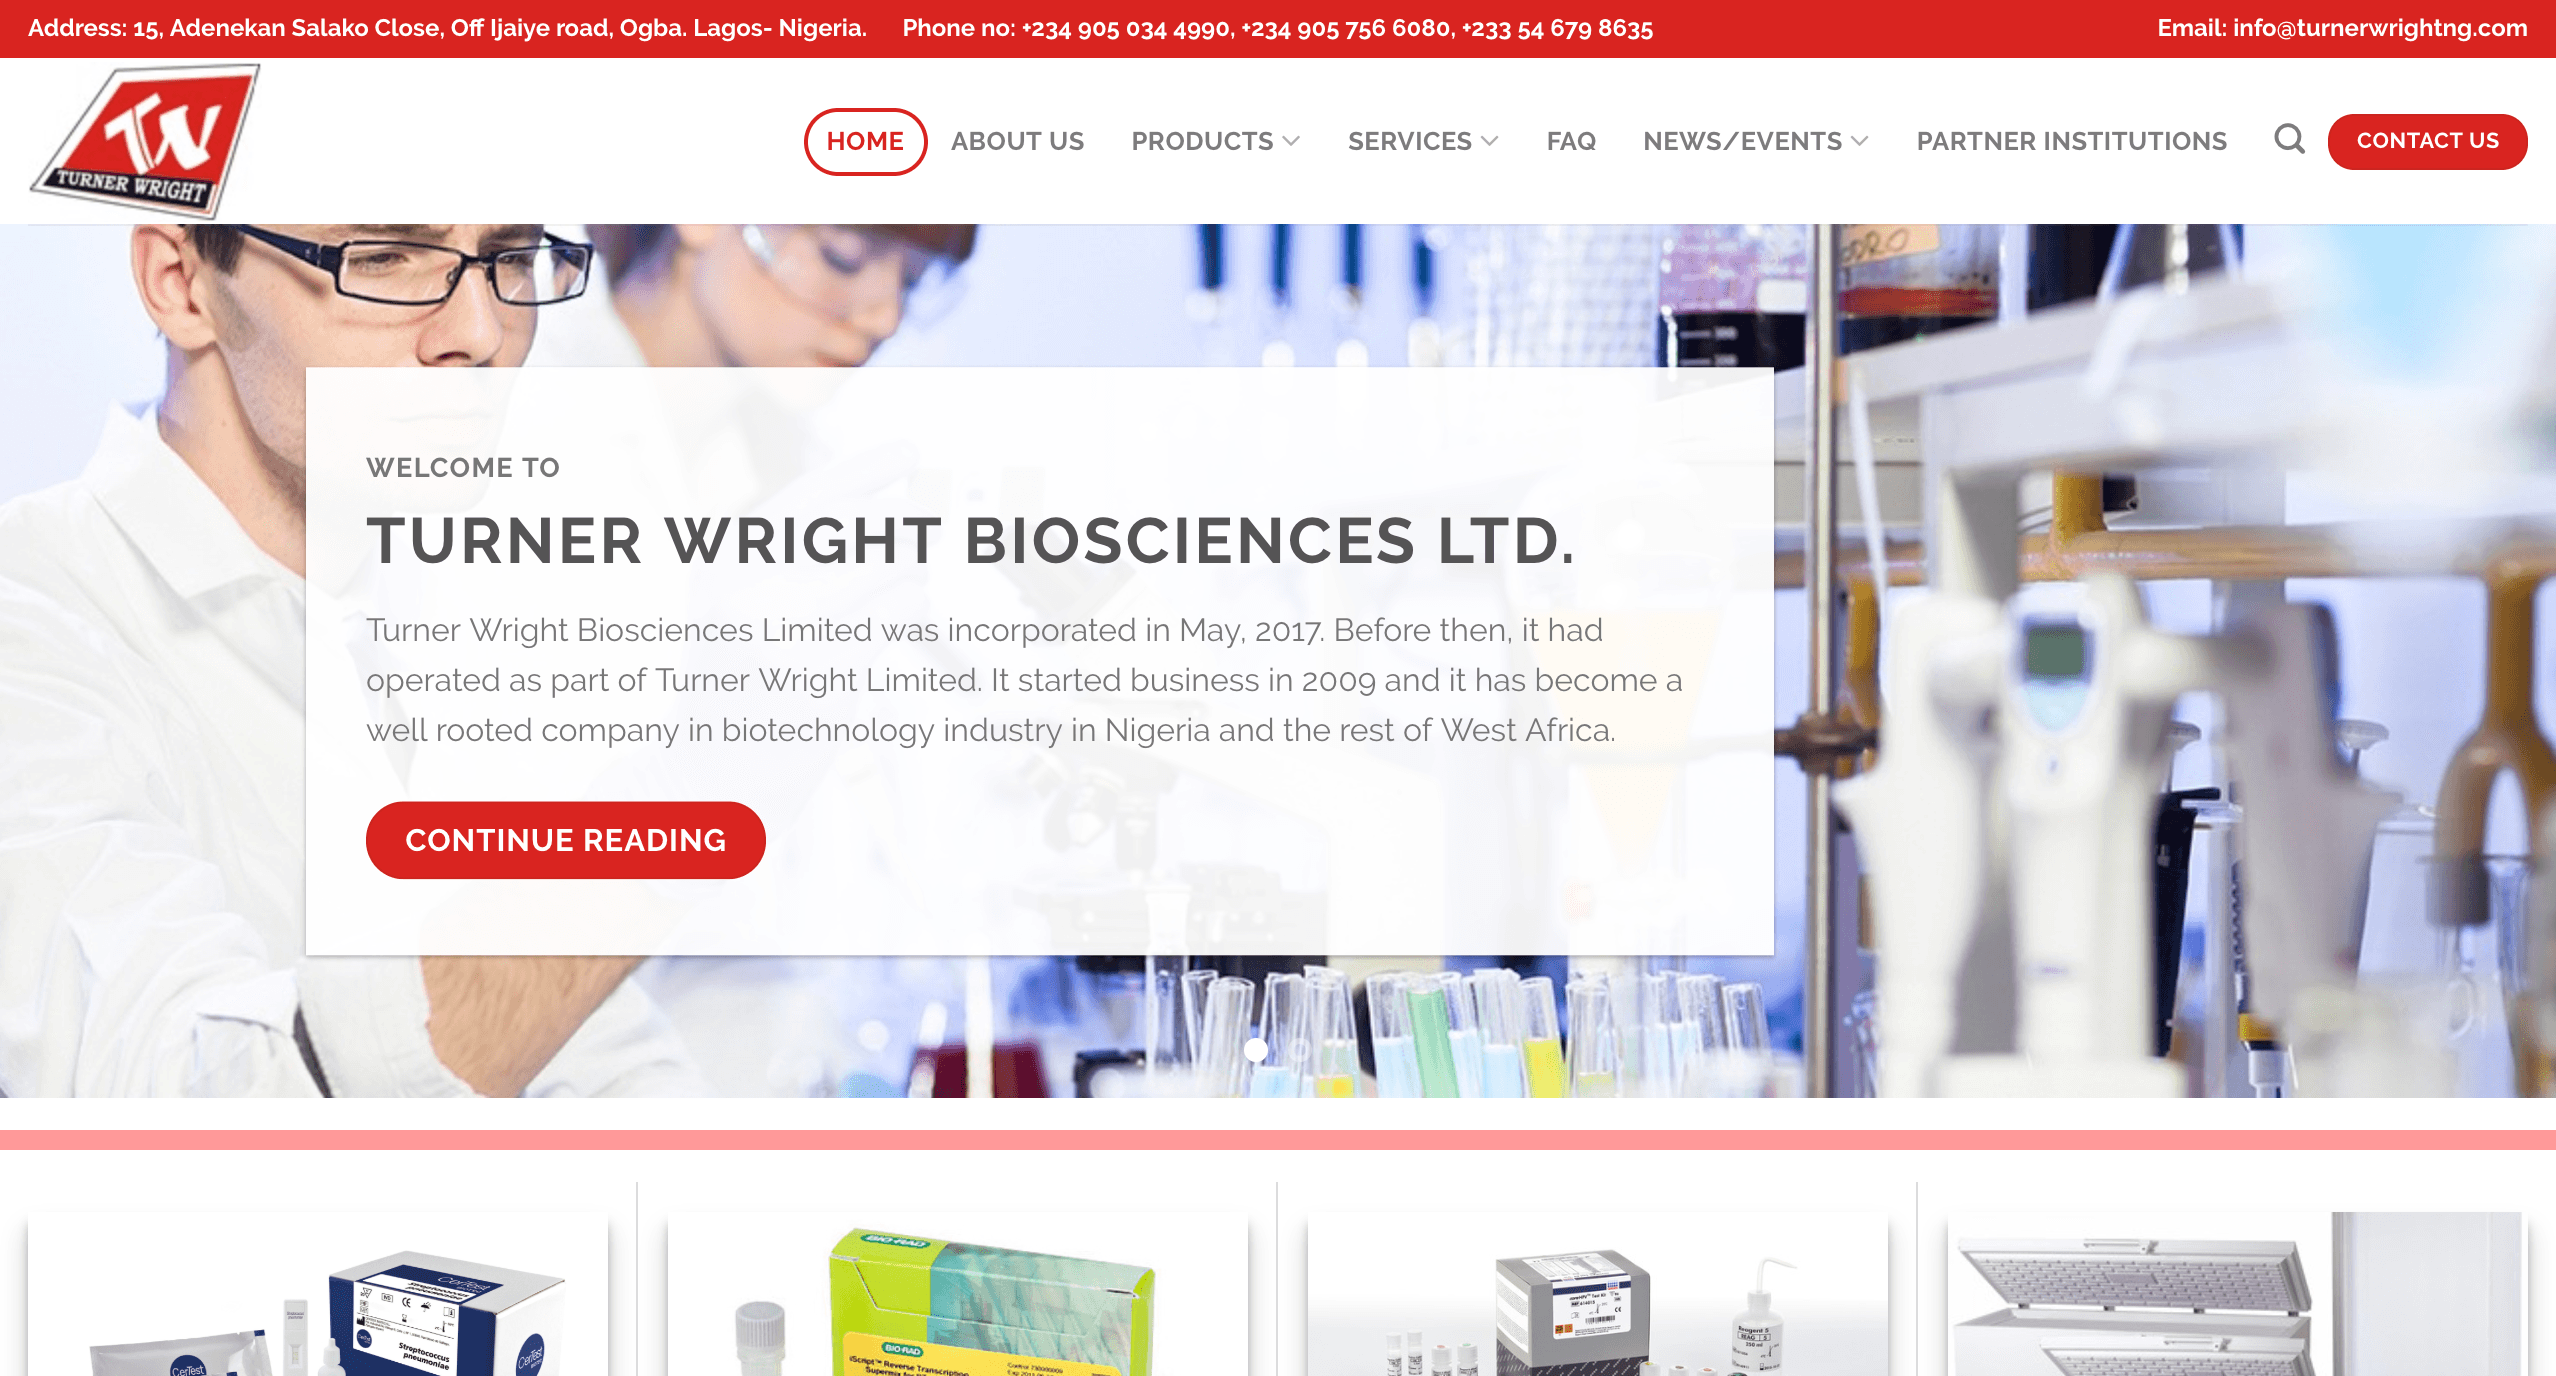 Turner Wright Biosciences Ltd.